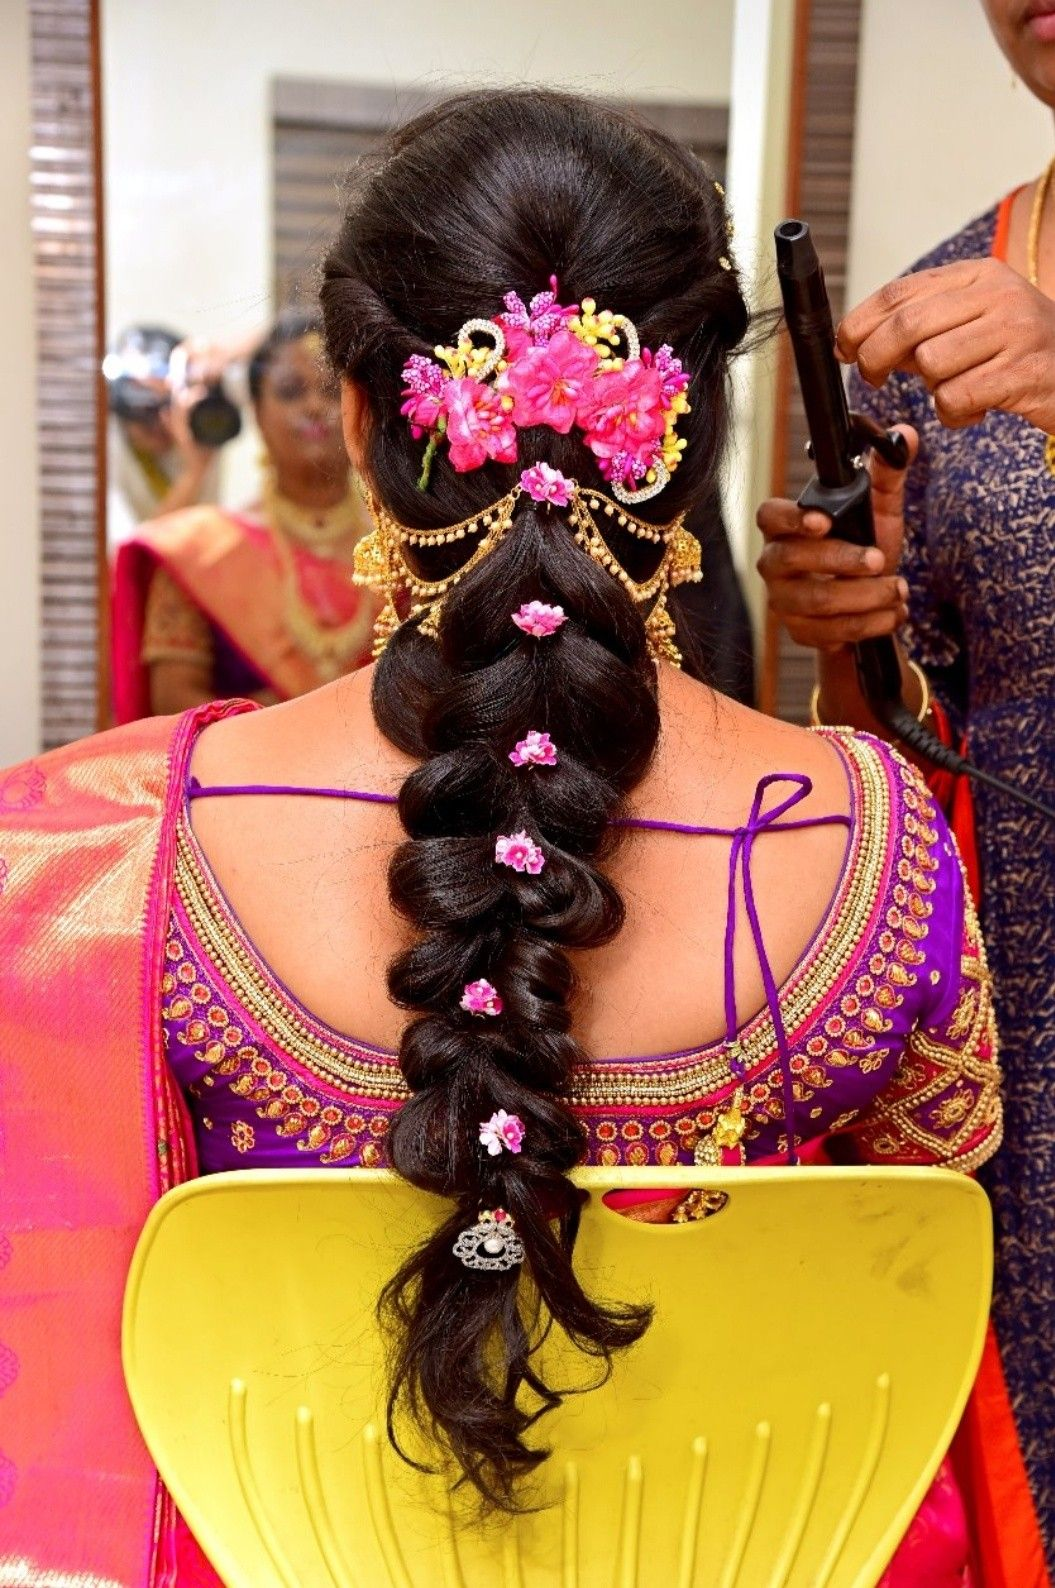 Spring In Hairstyle South Indian Bridal Hairstyles For Reception Evening Hairstyle By Deep Bridal Hairstyle For Reception Hair Styles New Bridal Hairstyle